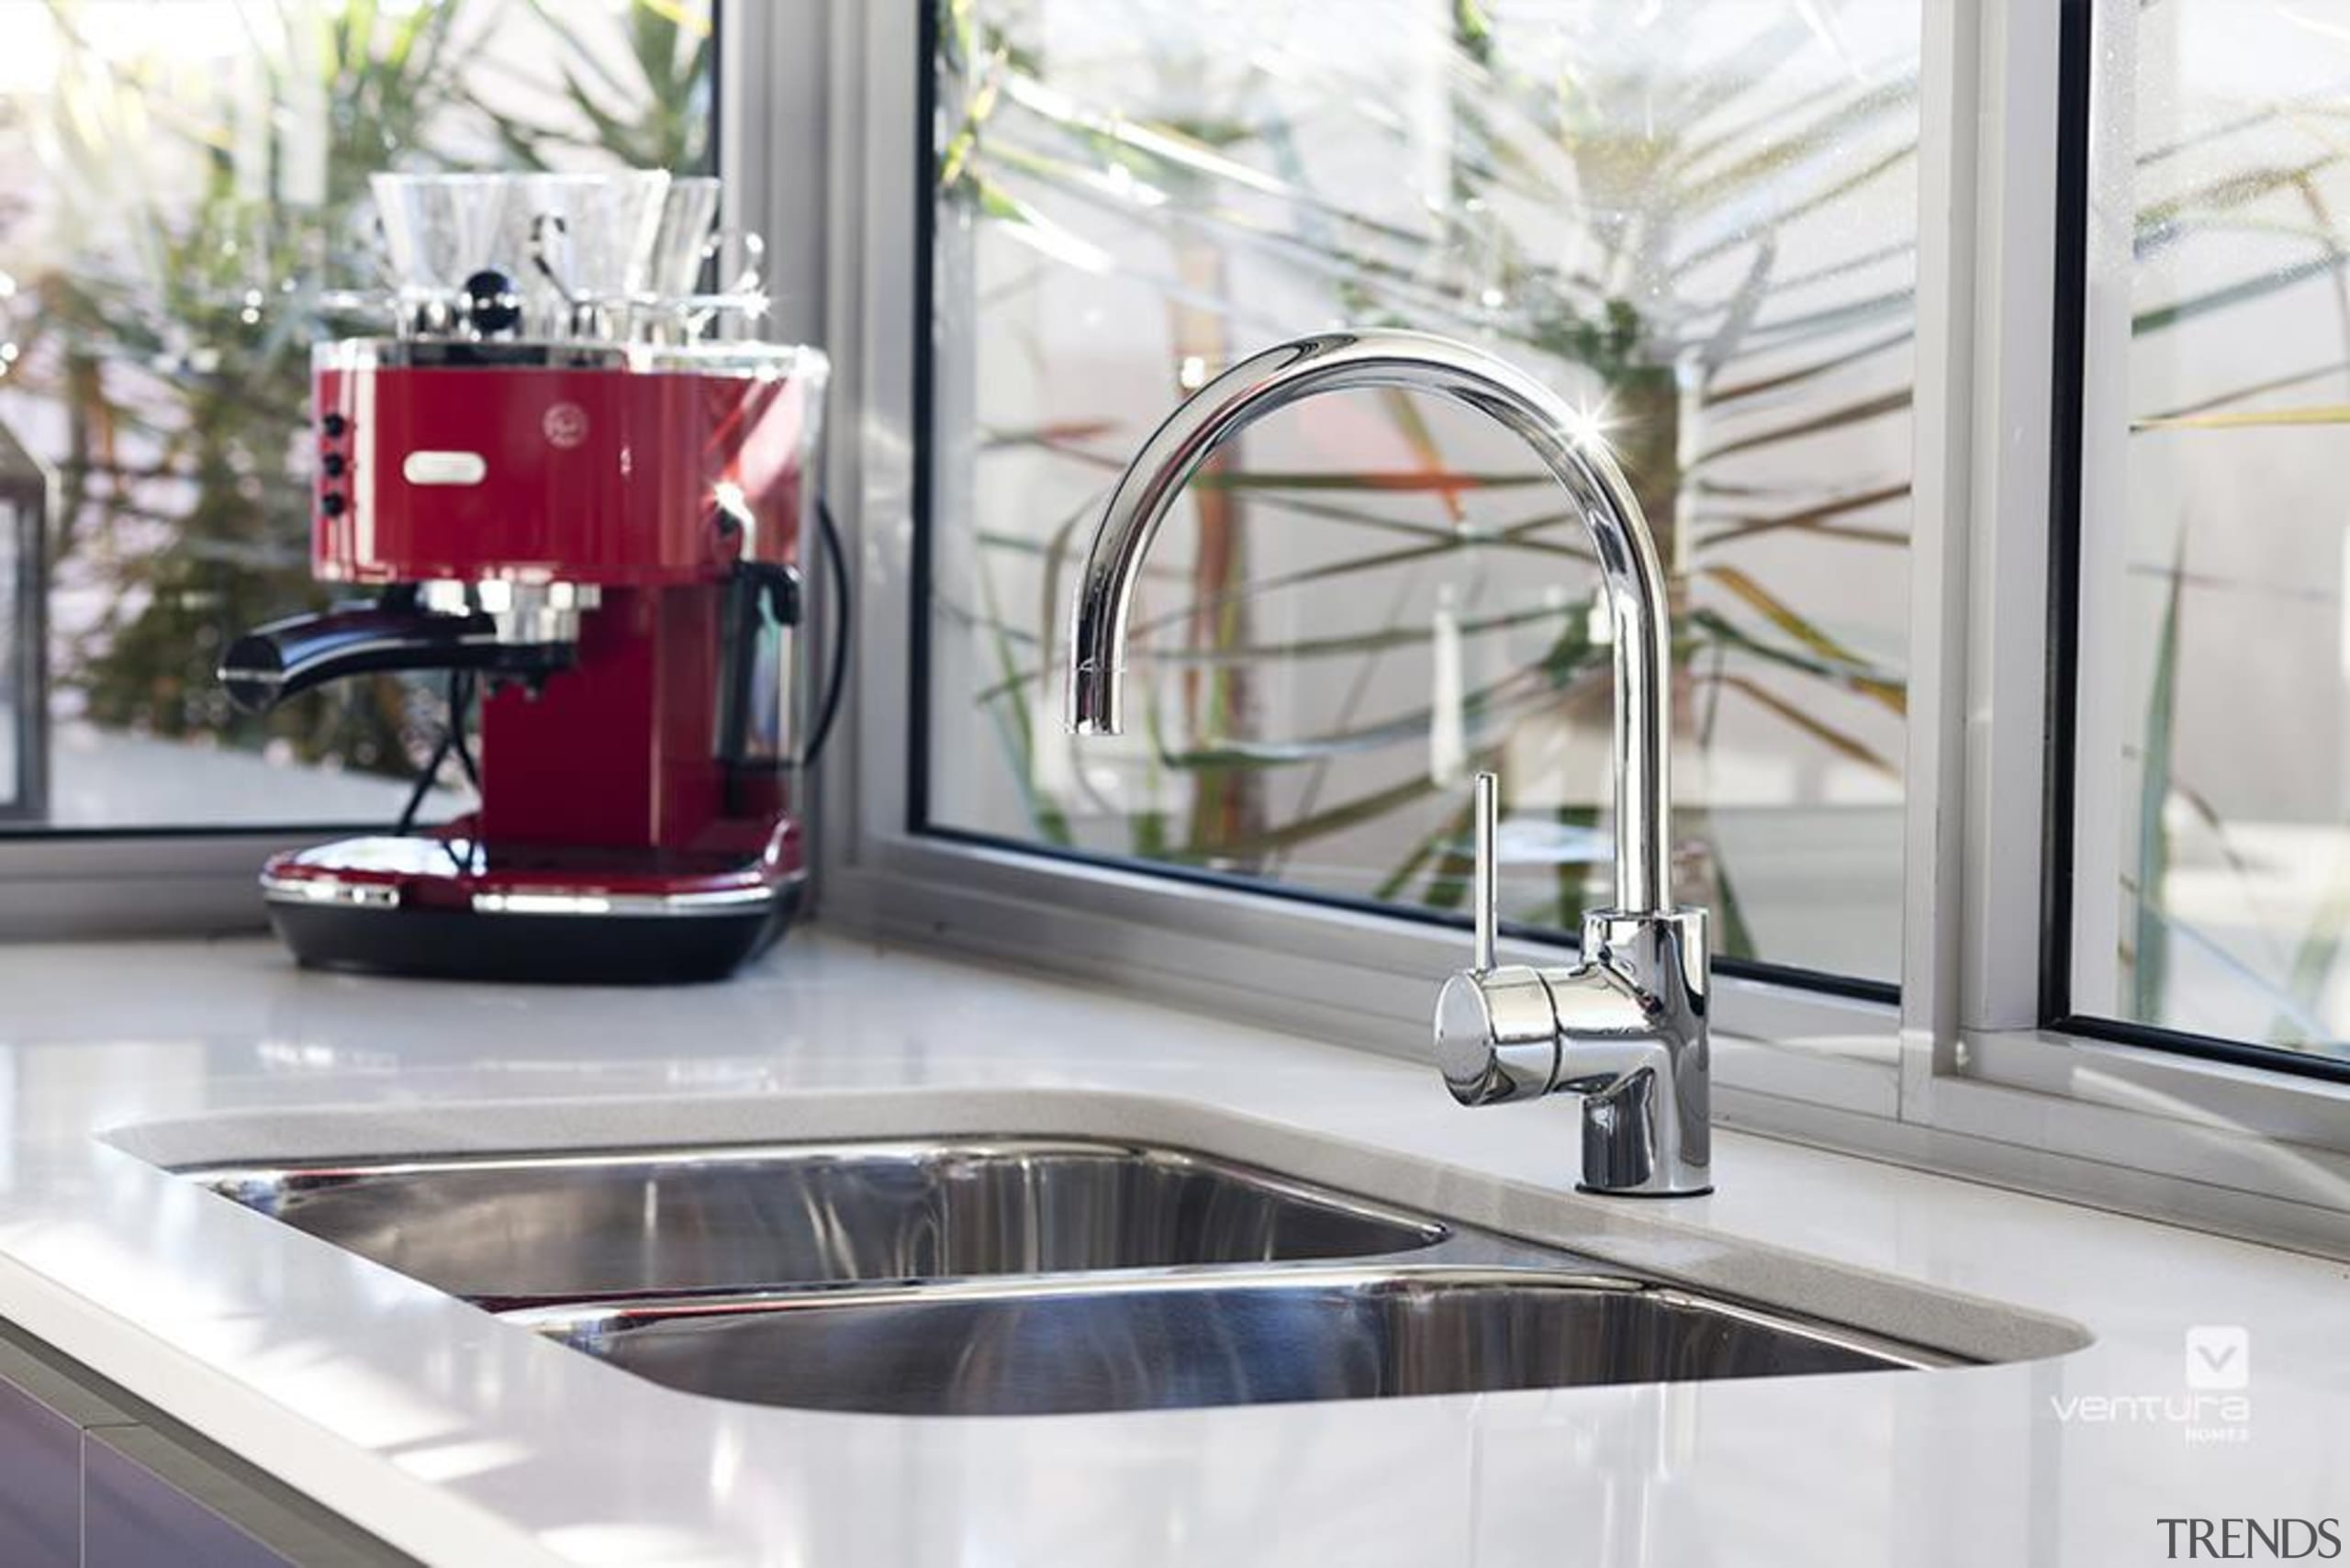 Kitchen design. - The Essence Display Home - countertop, sink, tap, white